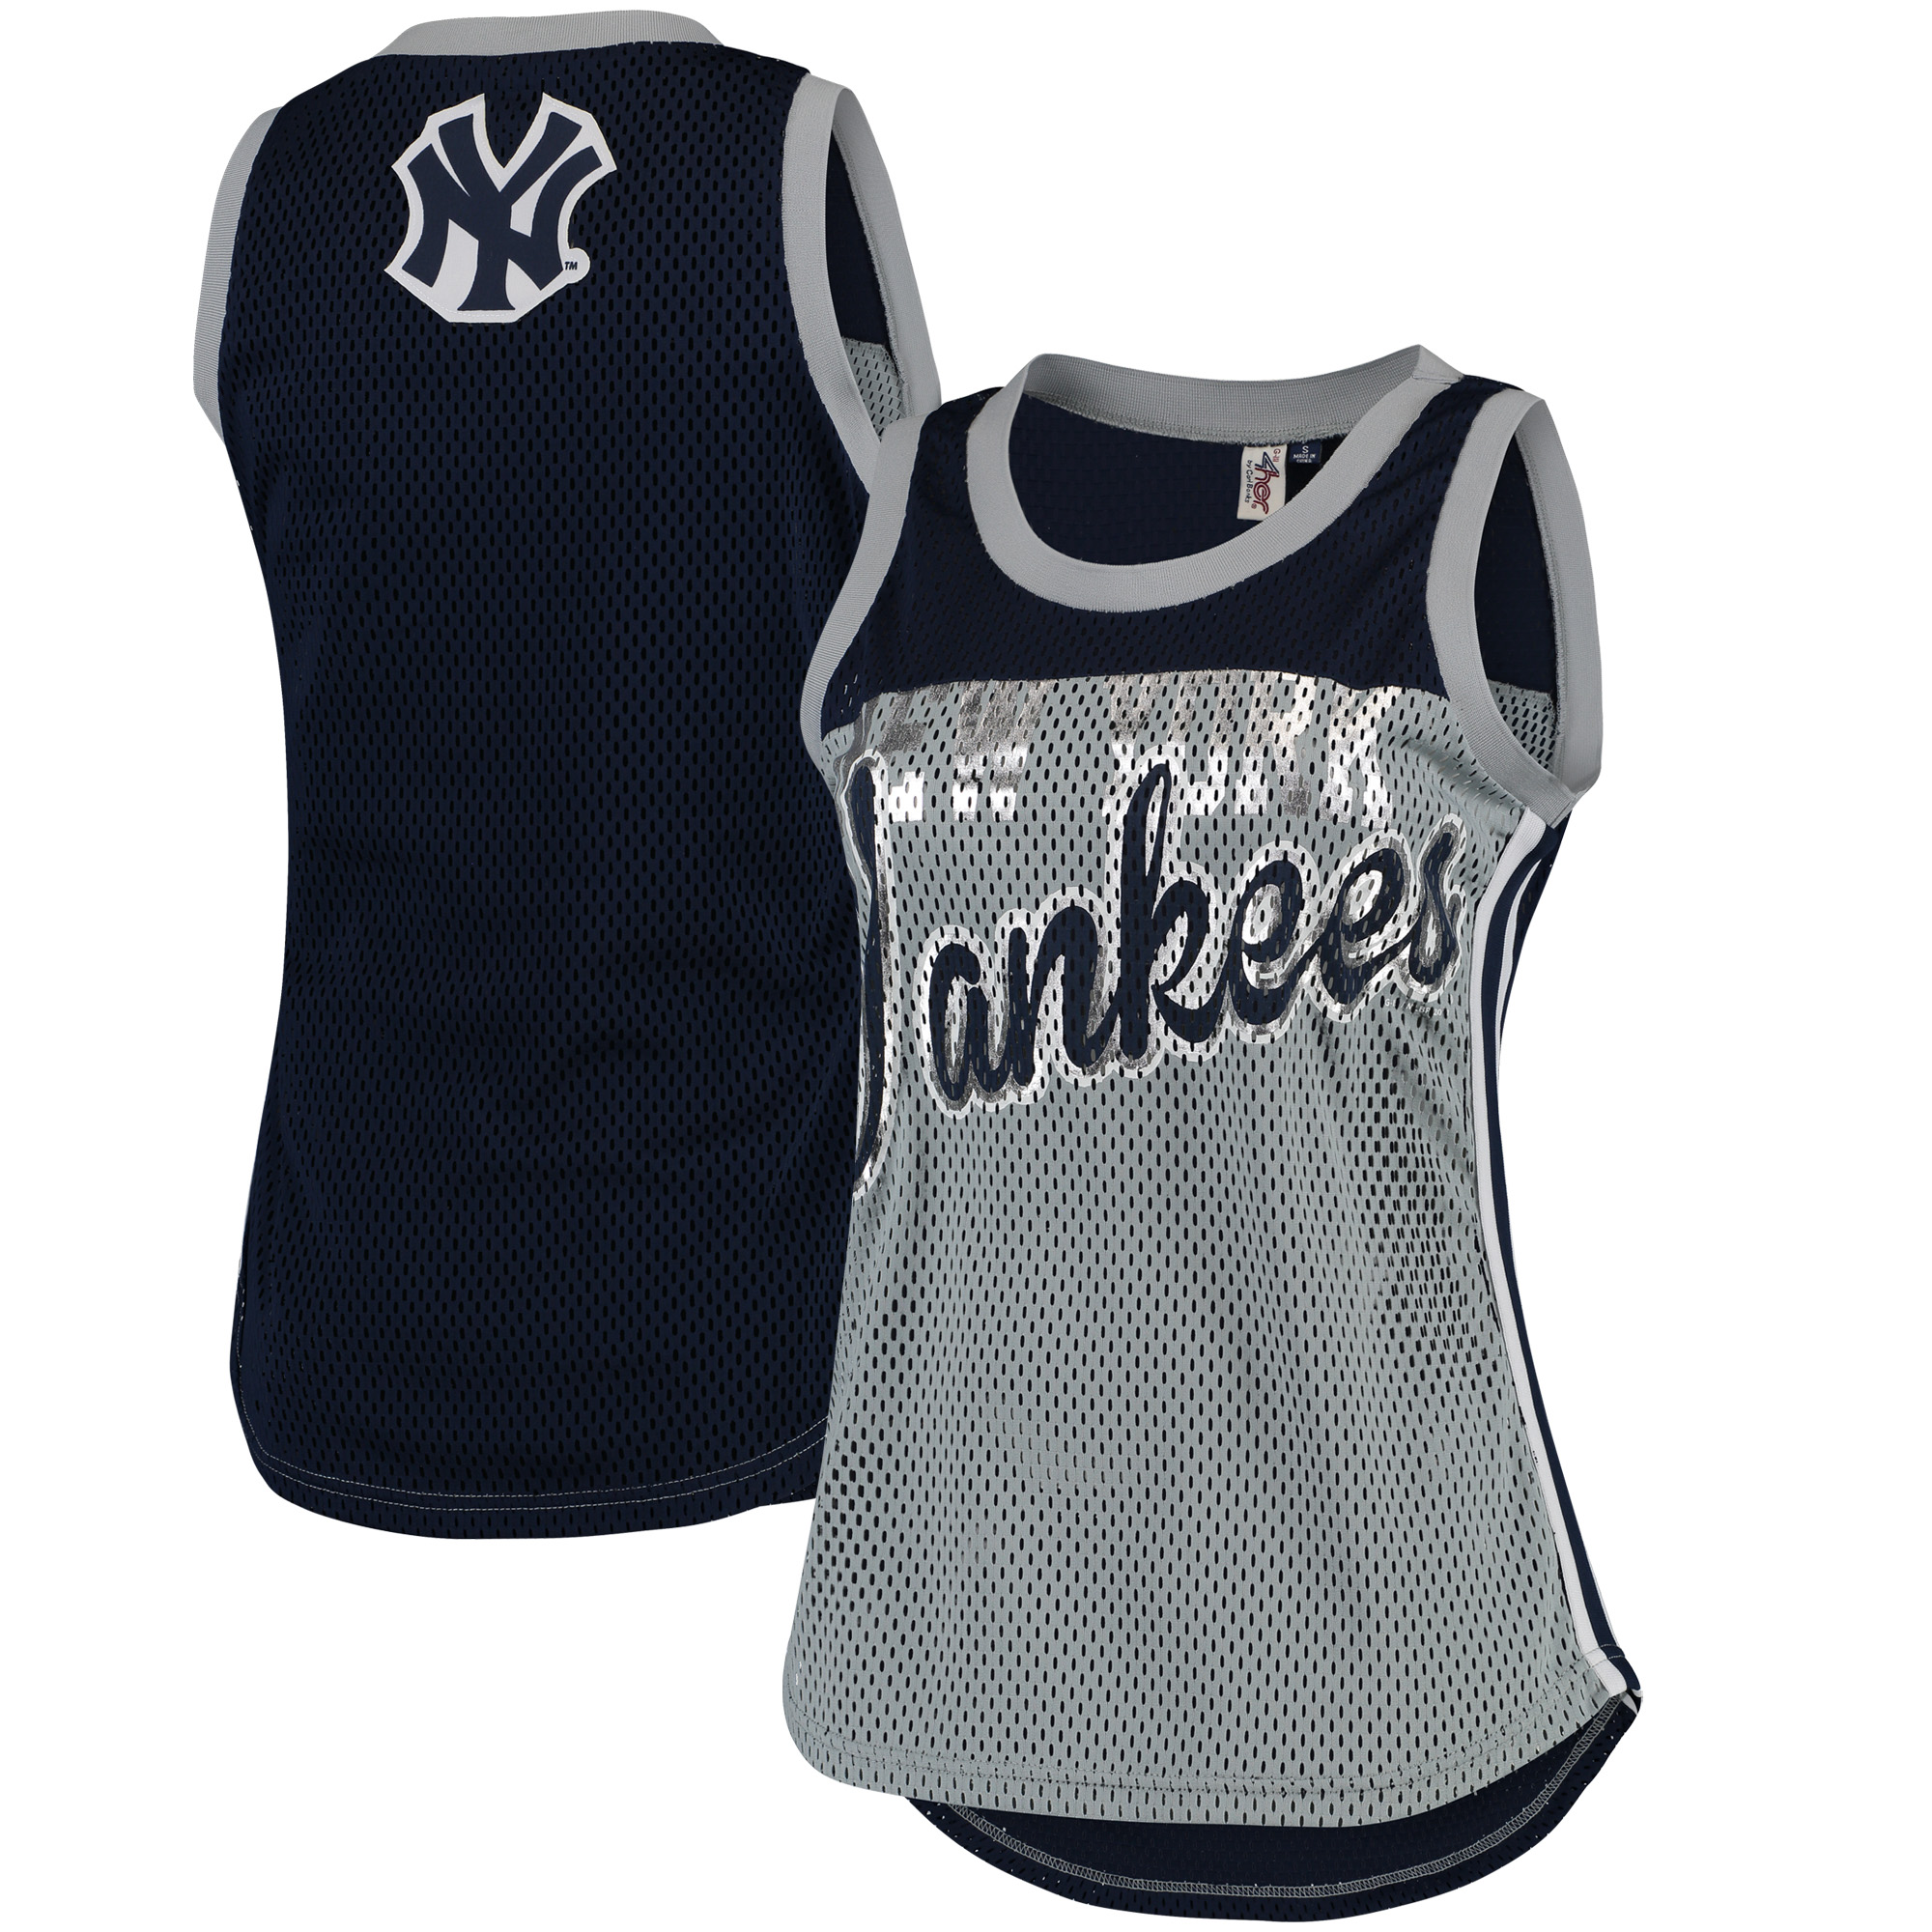 New York Yankees G-III 4Her by Carl Banks Women's Championship Tank Top - Gray/Navy